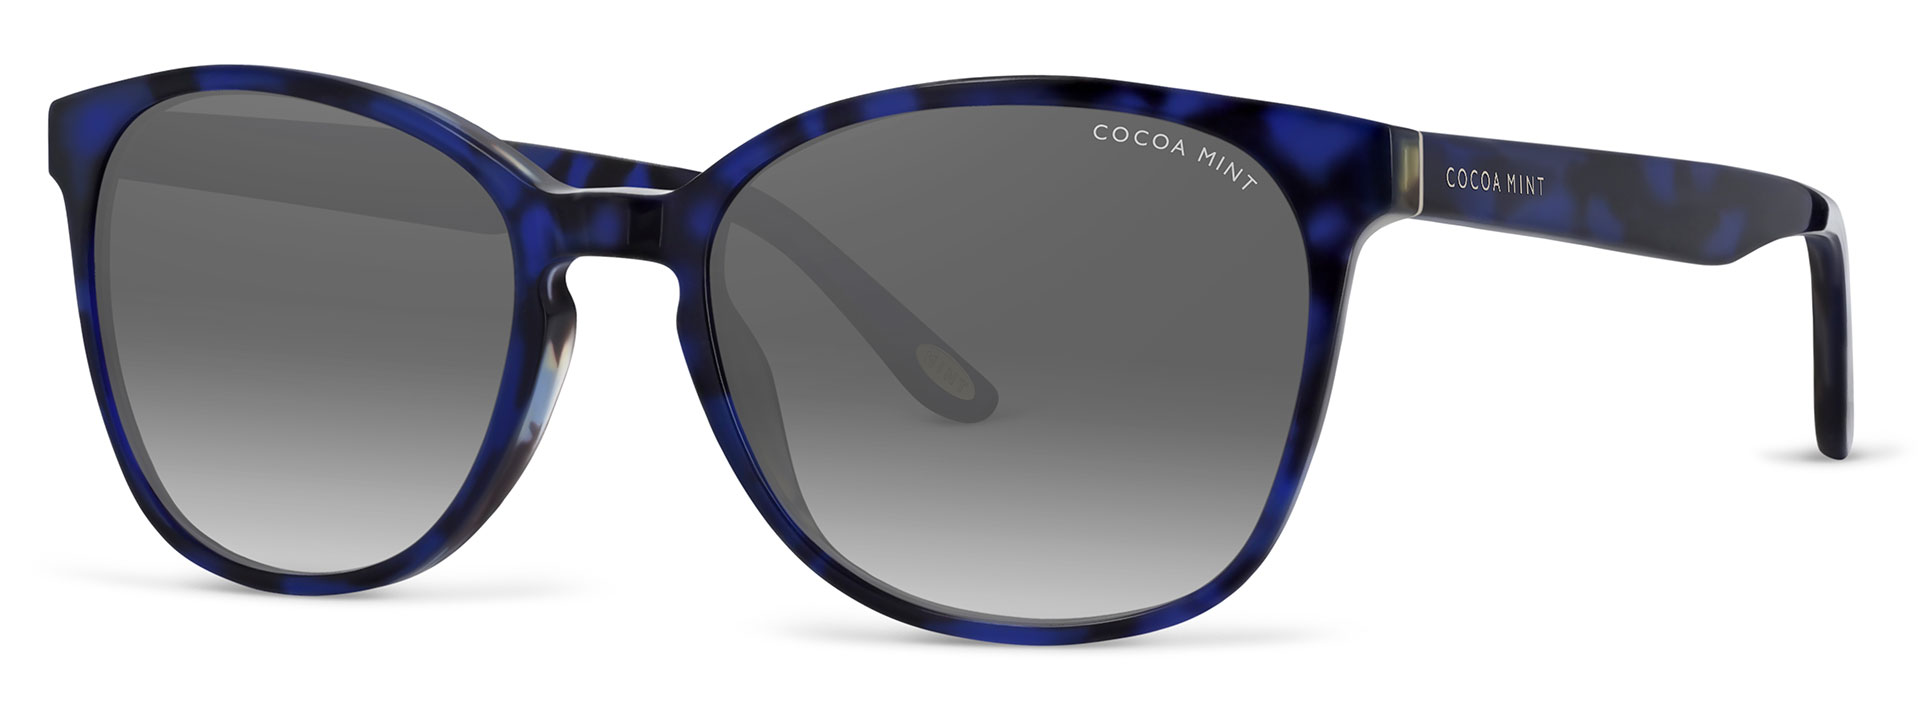 Cocoa Mint Sun Glasses - Blue - CMS2063-C1